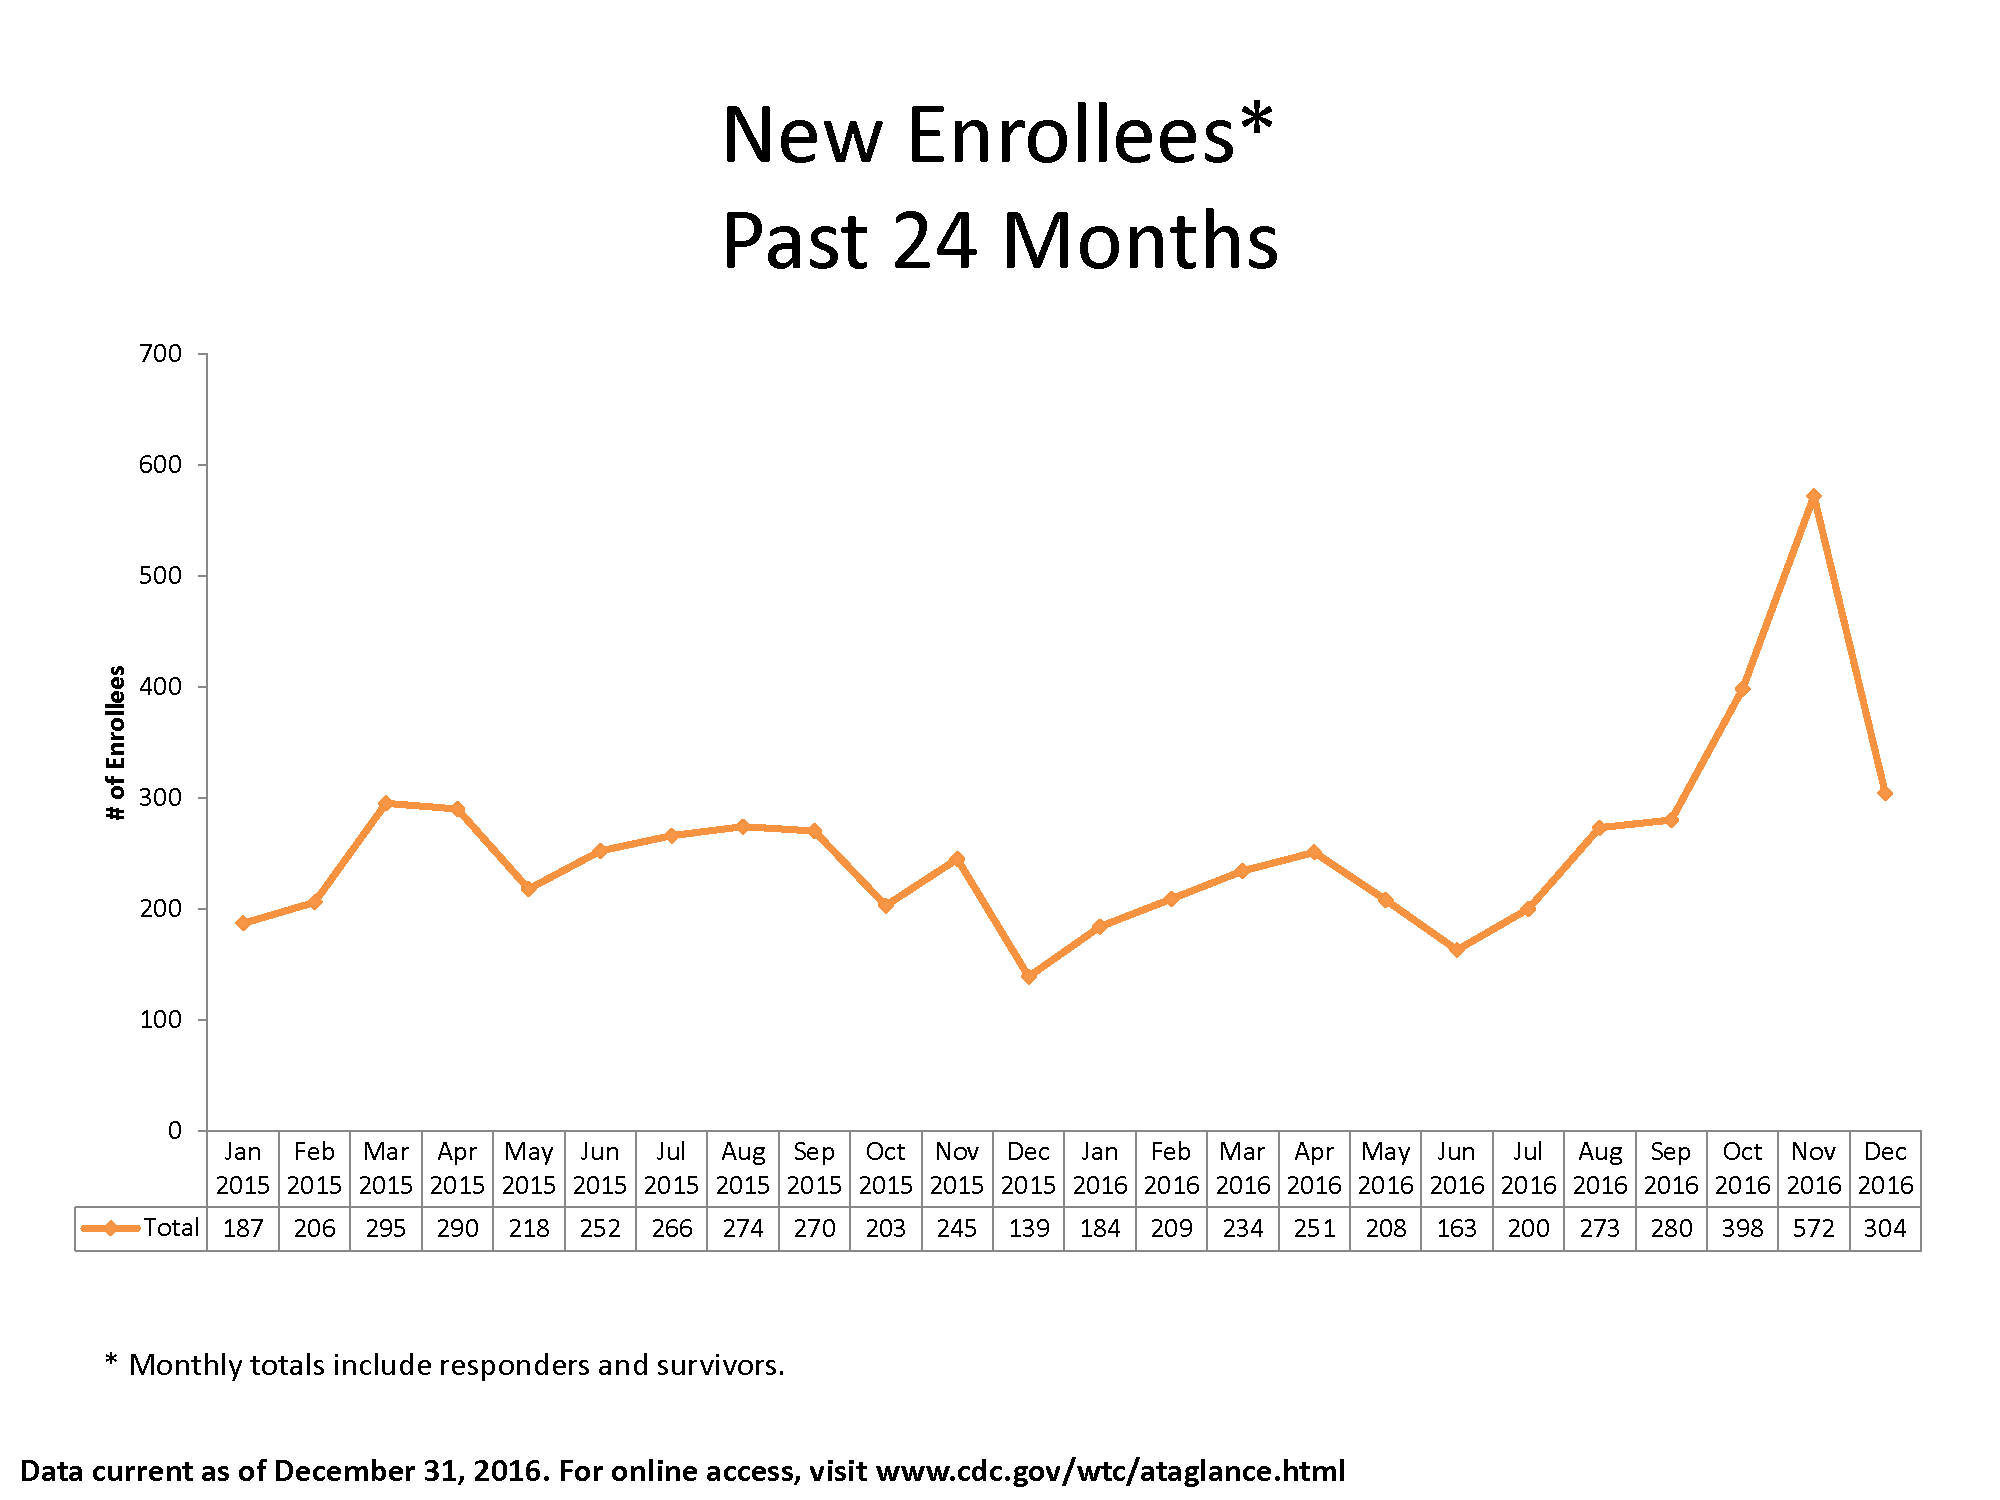 Line graph of data in table showing newly enrolled members by month from January 2015 through December 2016.